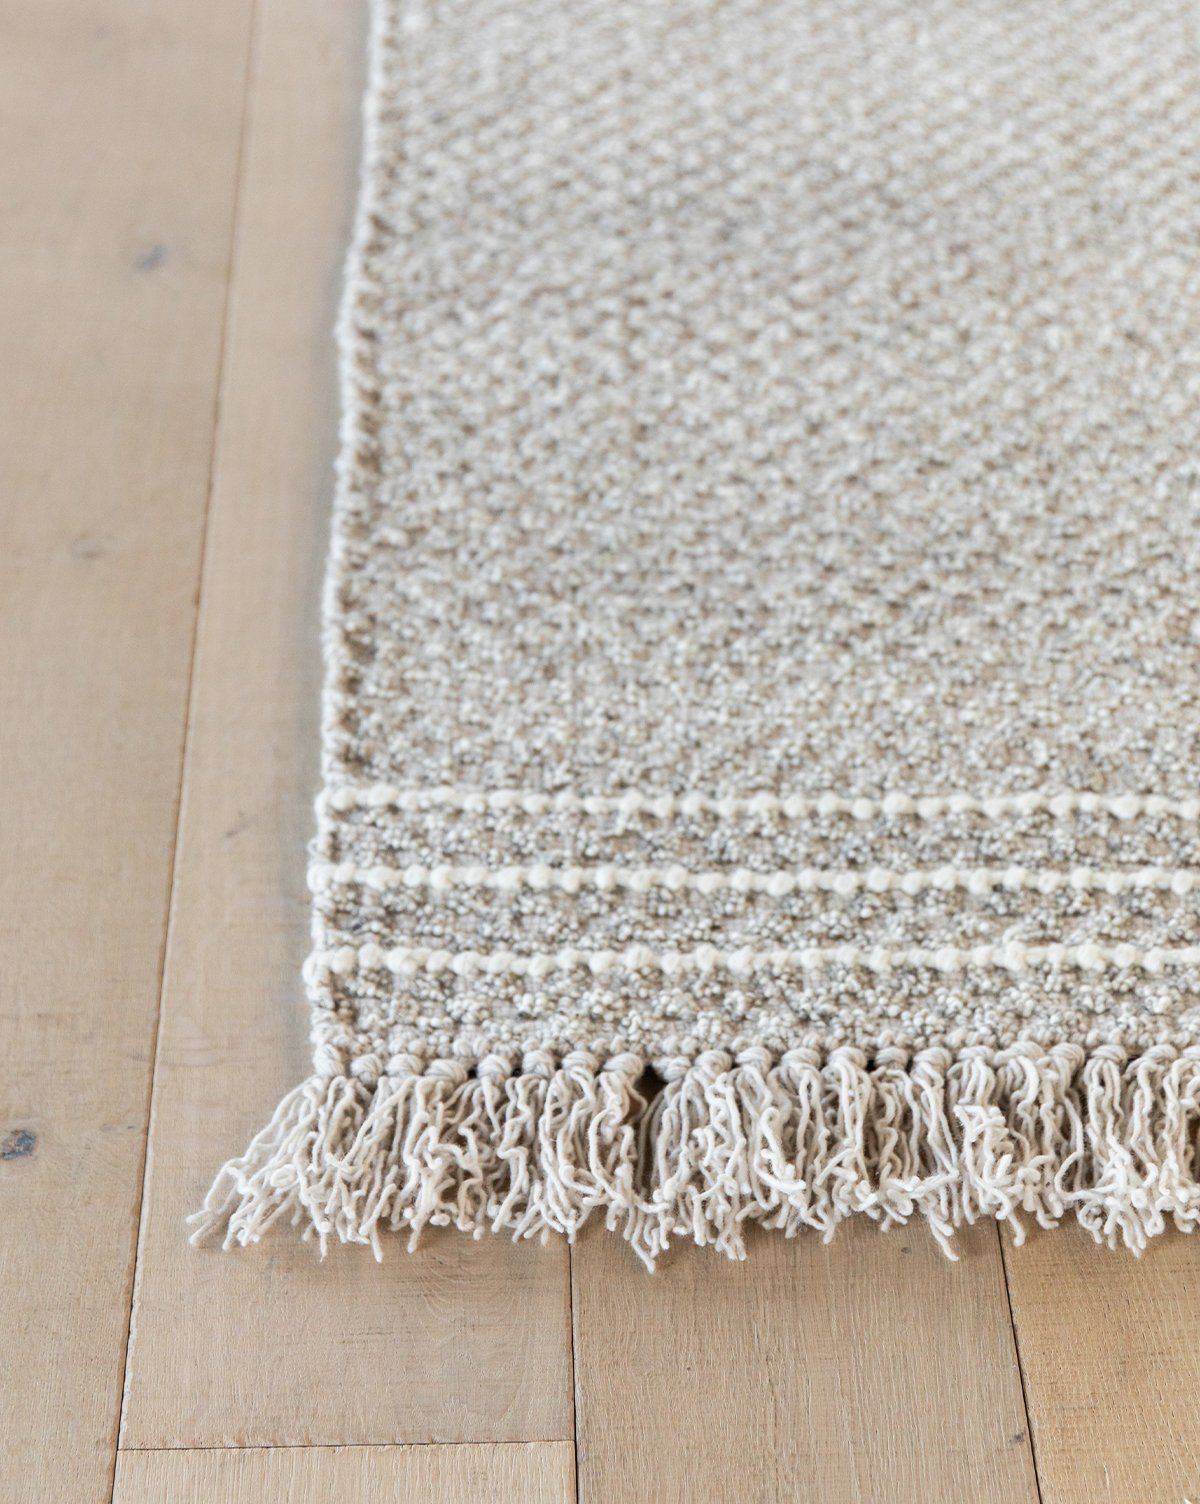 Lazro Fringe Woven Rug In 2020 | Woven Rug, Rug Pattern, Rugs Regarding Most Up To Date Blended Fabric Fringed Design Woven With Rod (View 15 of 20)